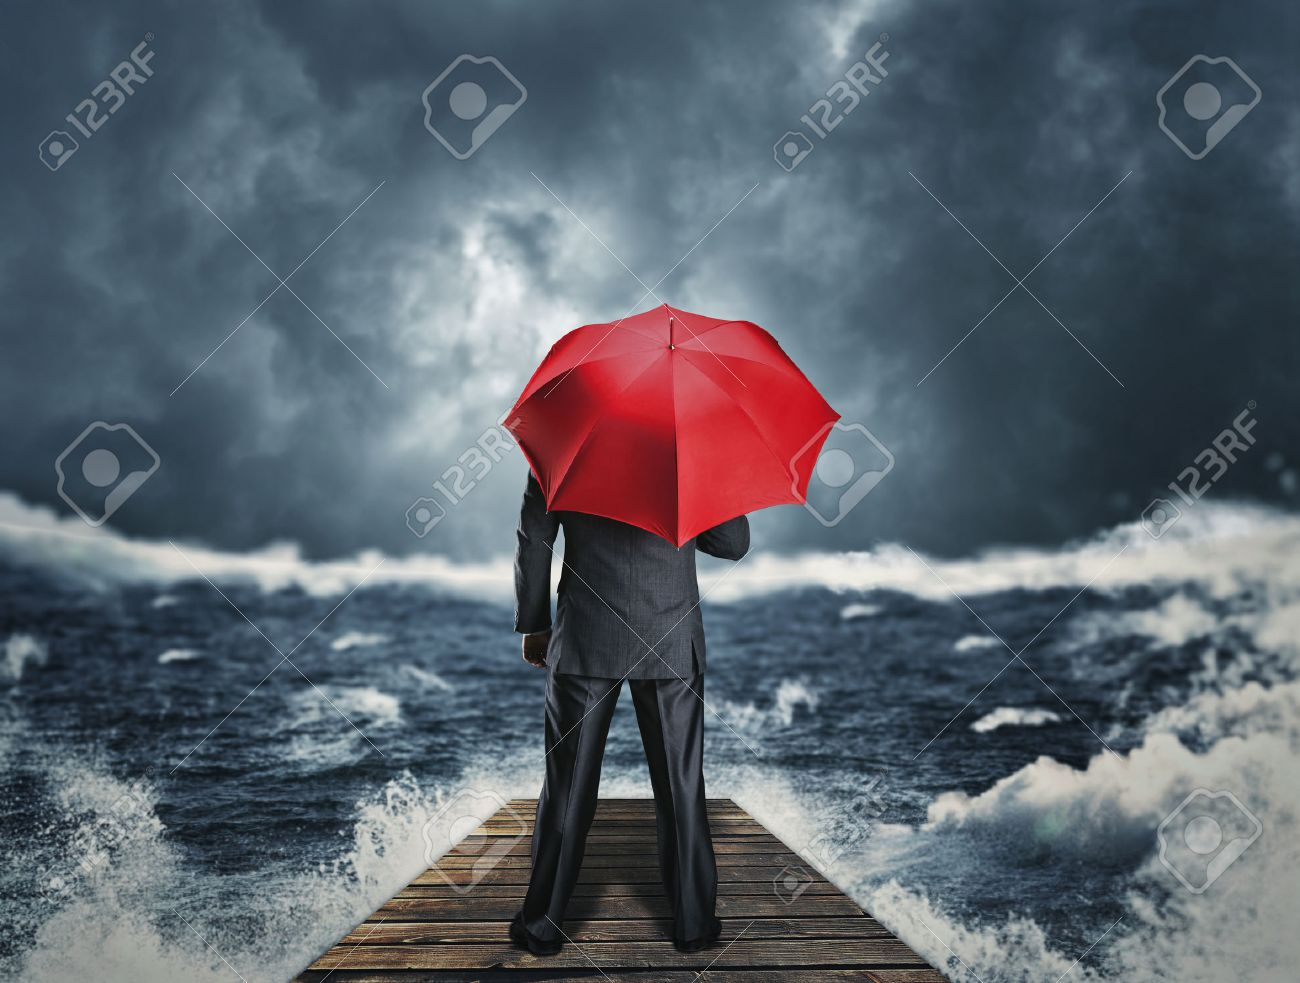 Man with red umbrella standing back on the pier at night storm Stock Photo - 39184554